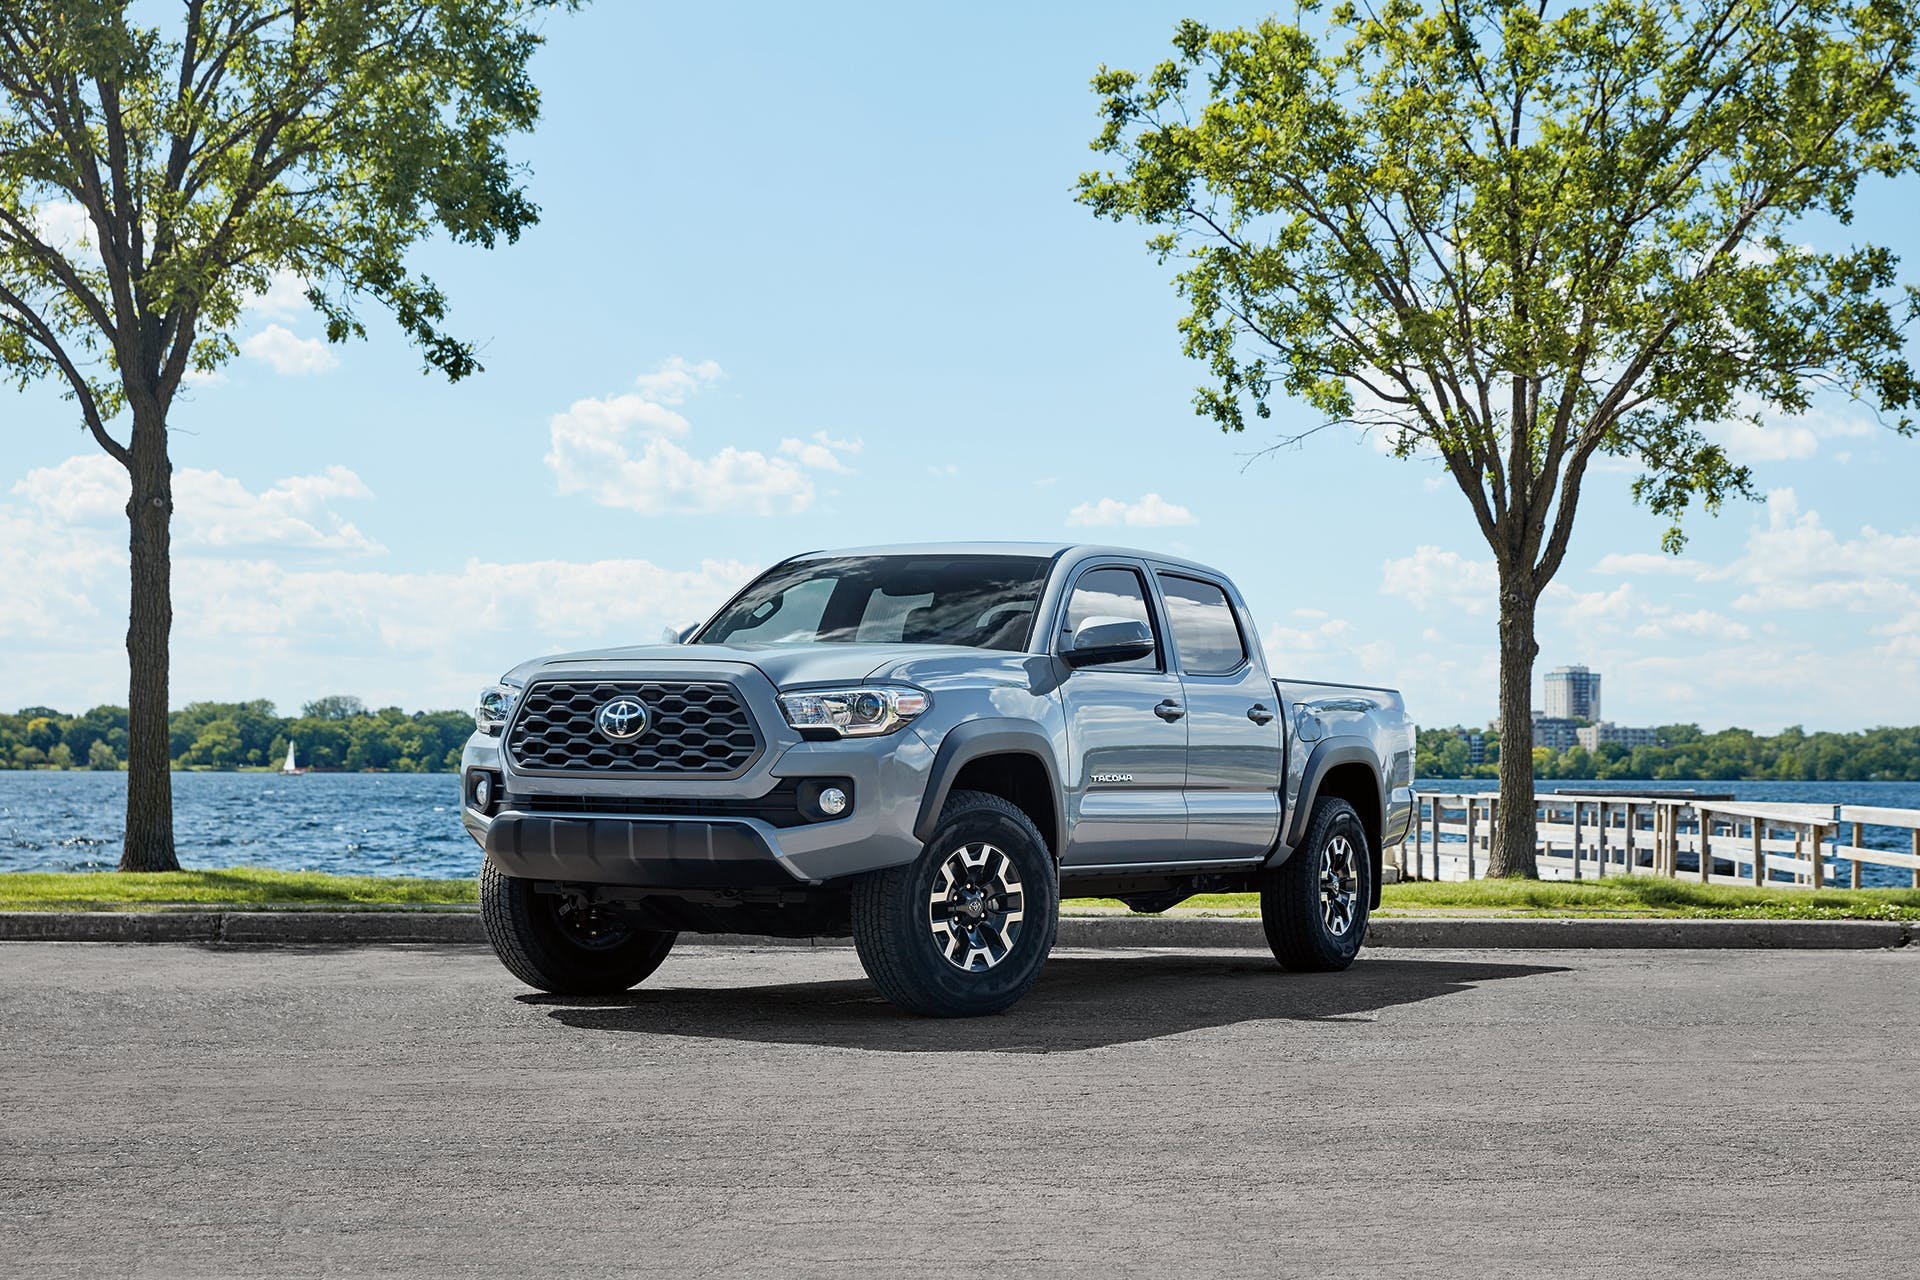 South Hills Toyota is a Toyota Dealership in Canonsburg near Pittsburgh PA | 2021 Toyota Tacoma parked by lake